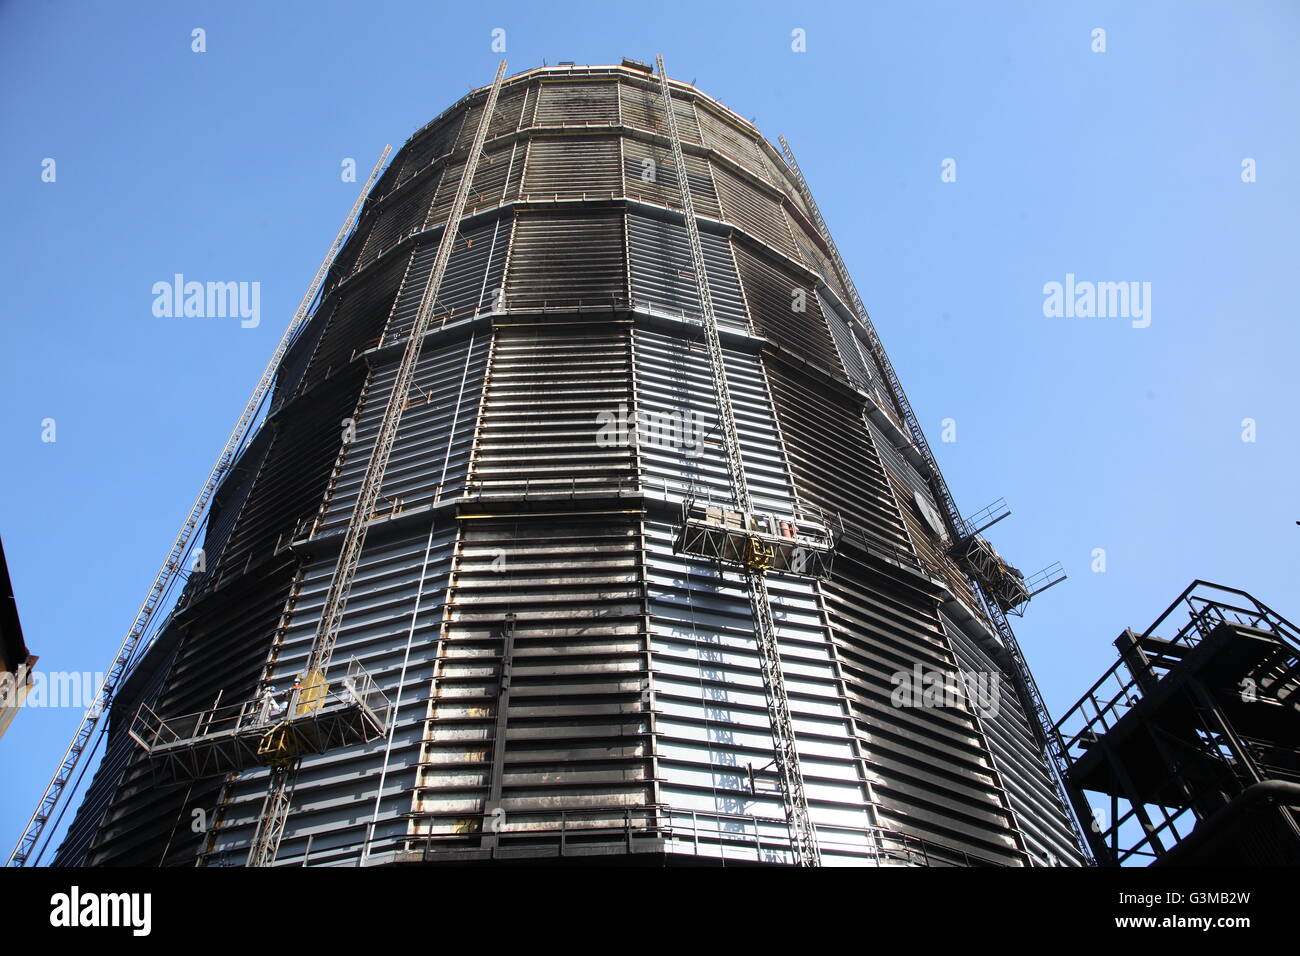 Steel gas holder at Redcar Steelworks taken in 2009 before closure. Shows maintenance from electric mast-climbing - Stock Image